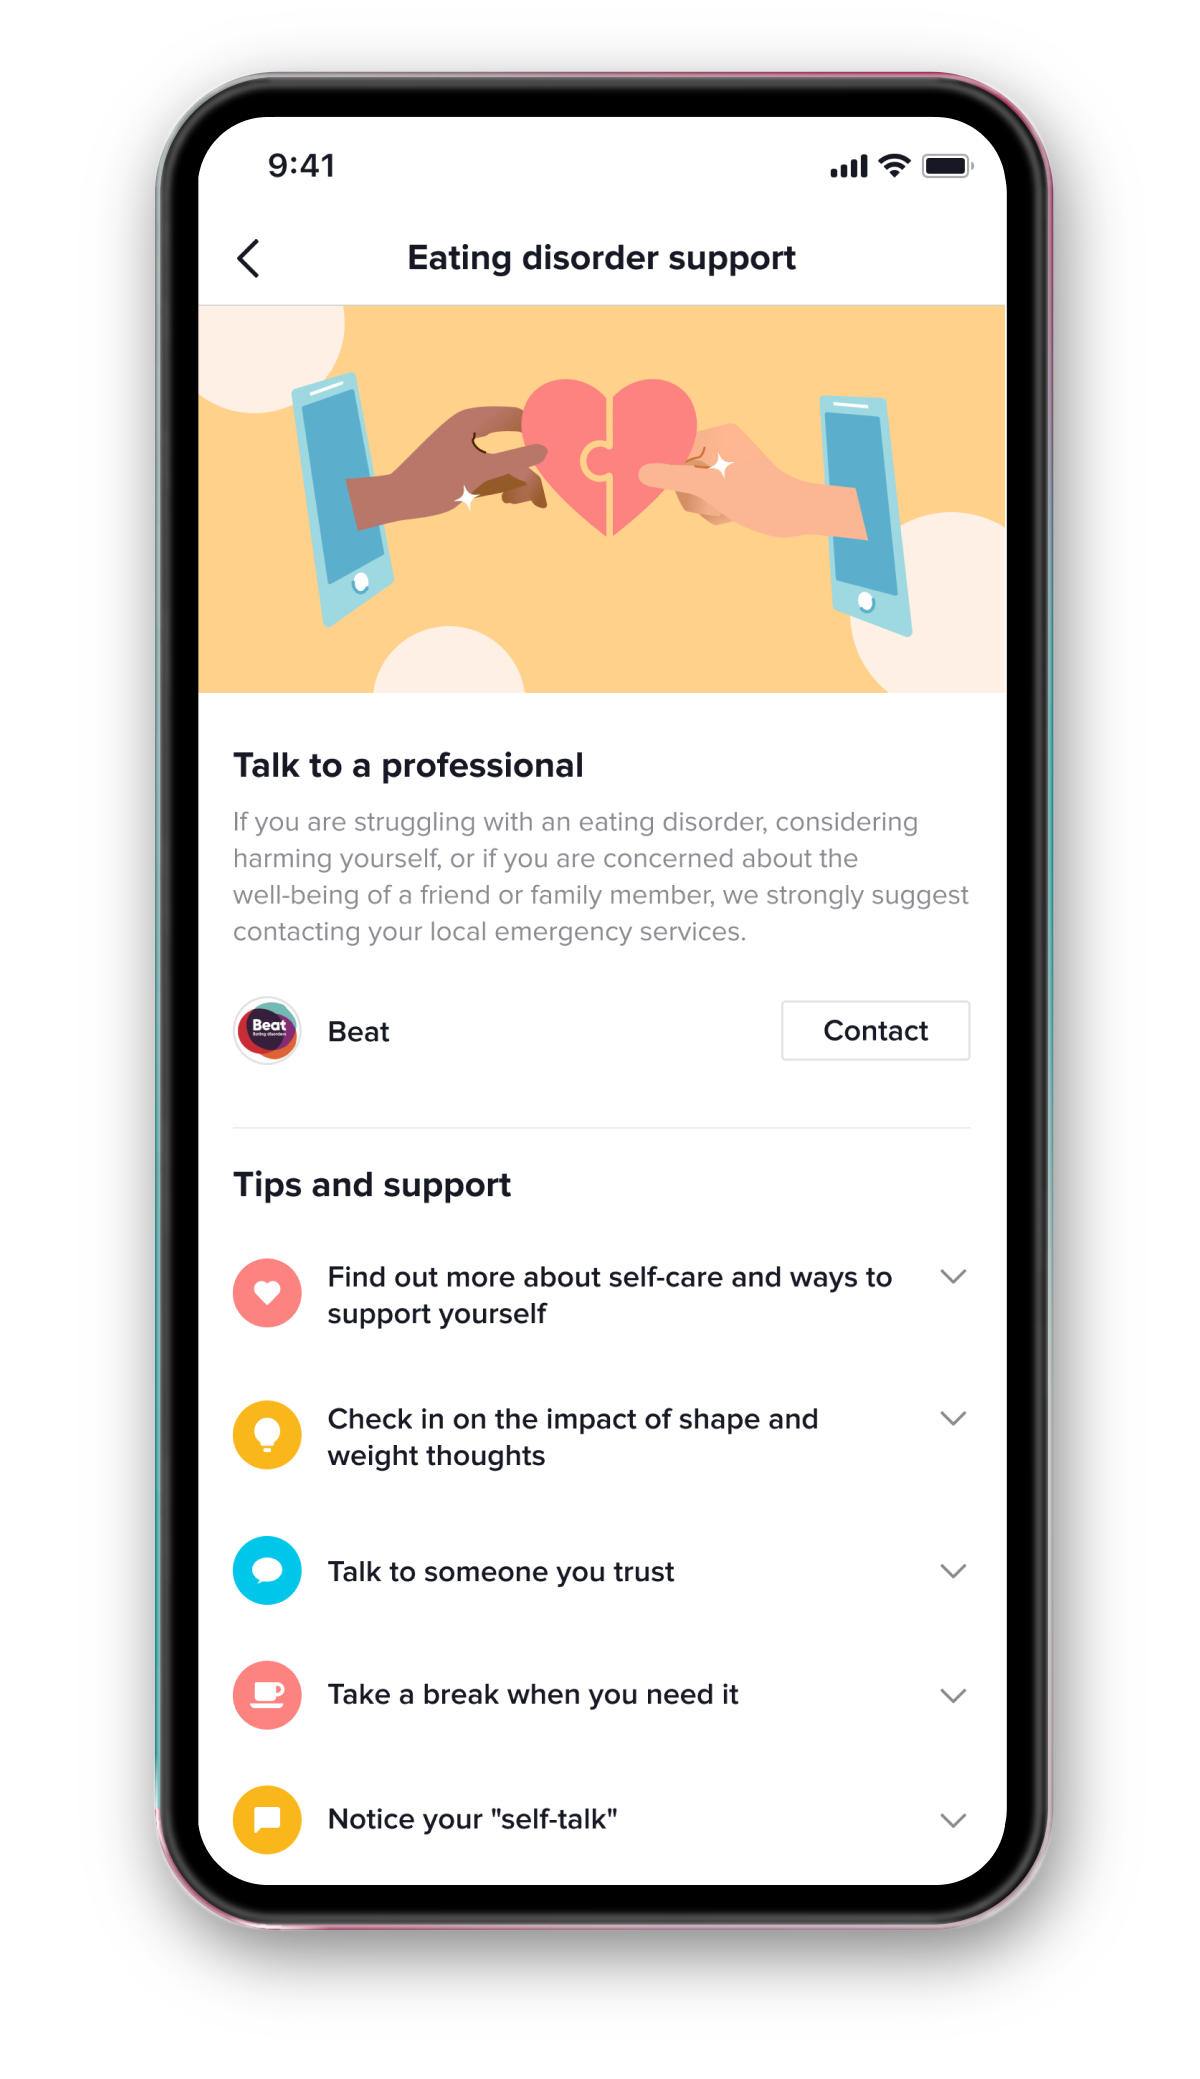 In-app support